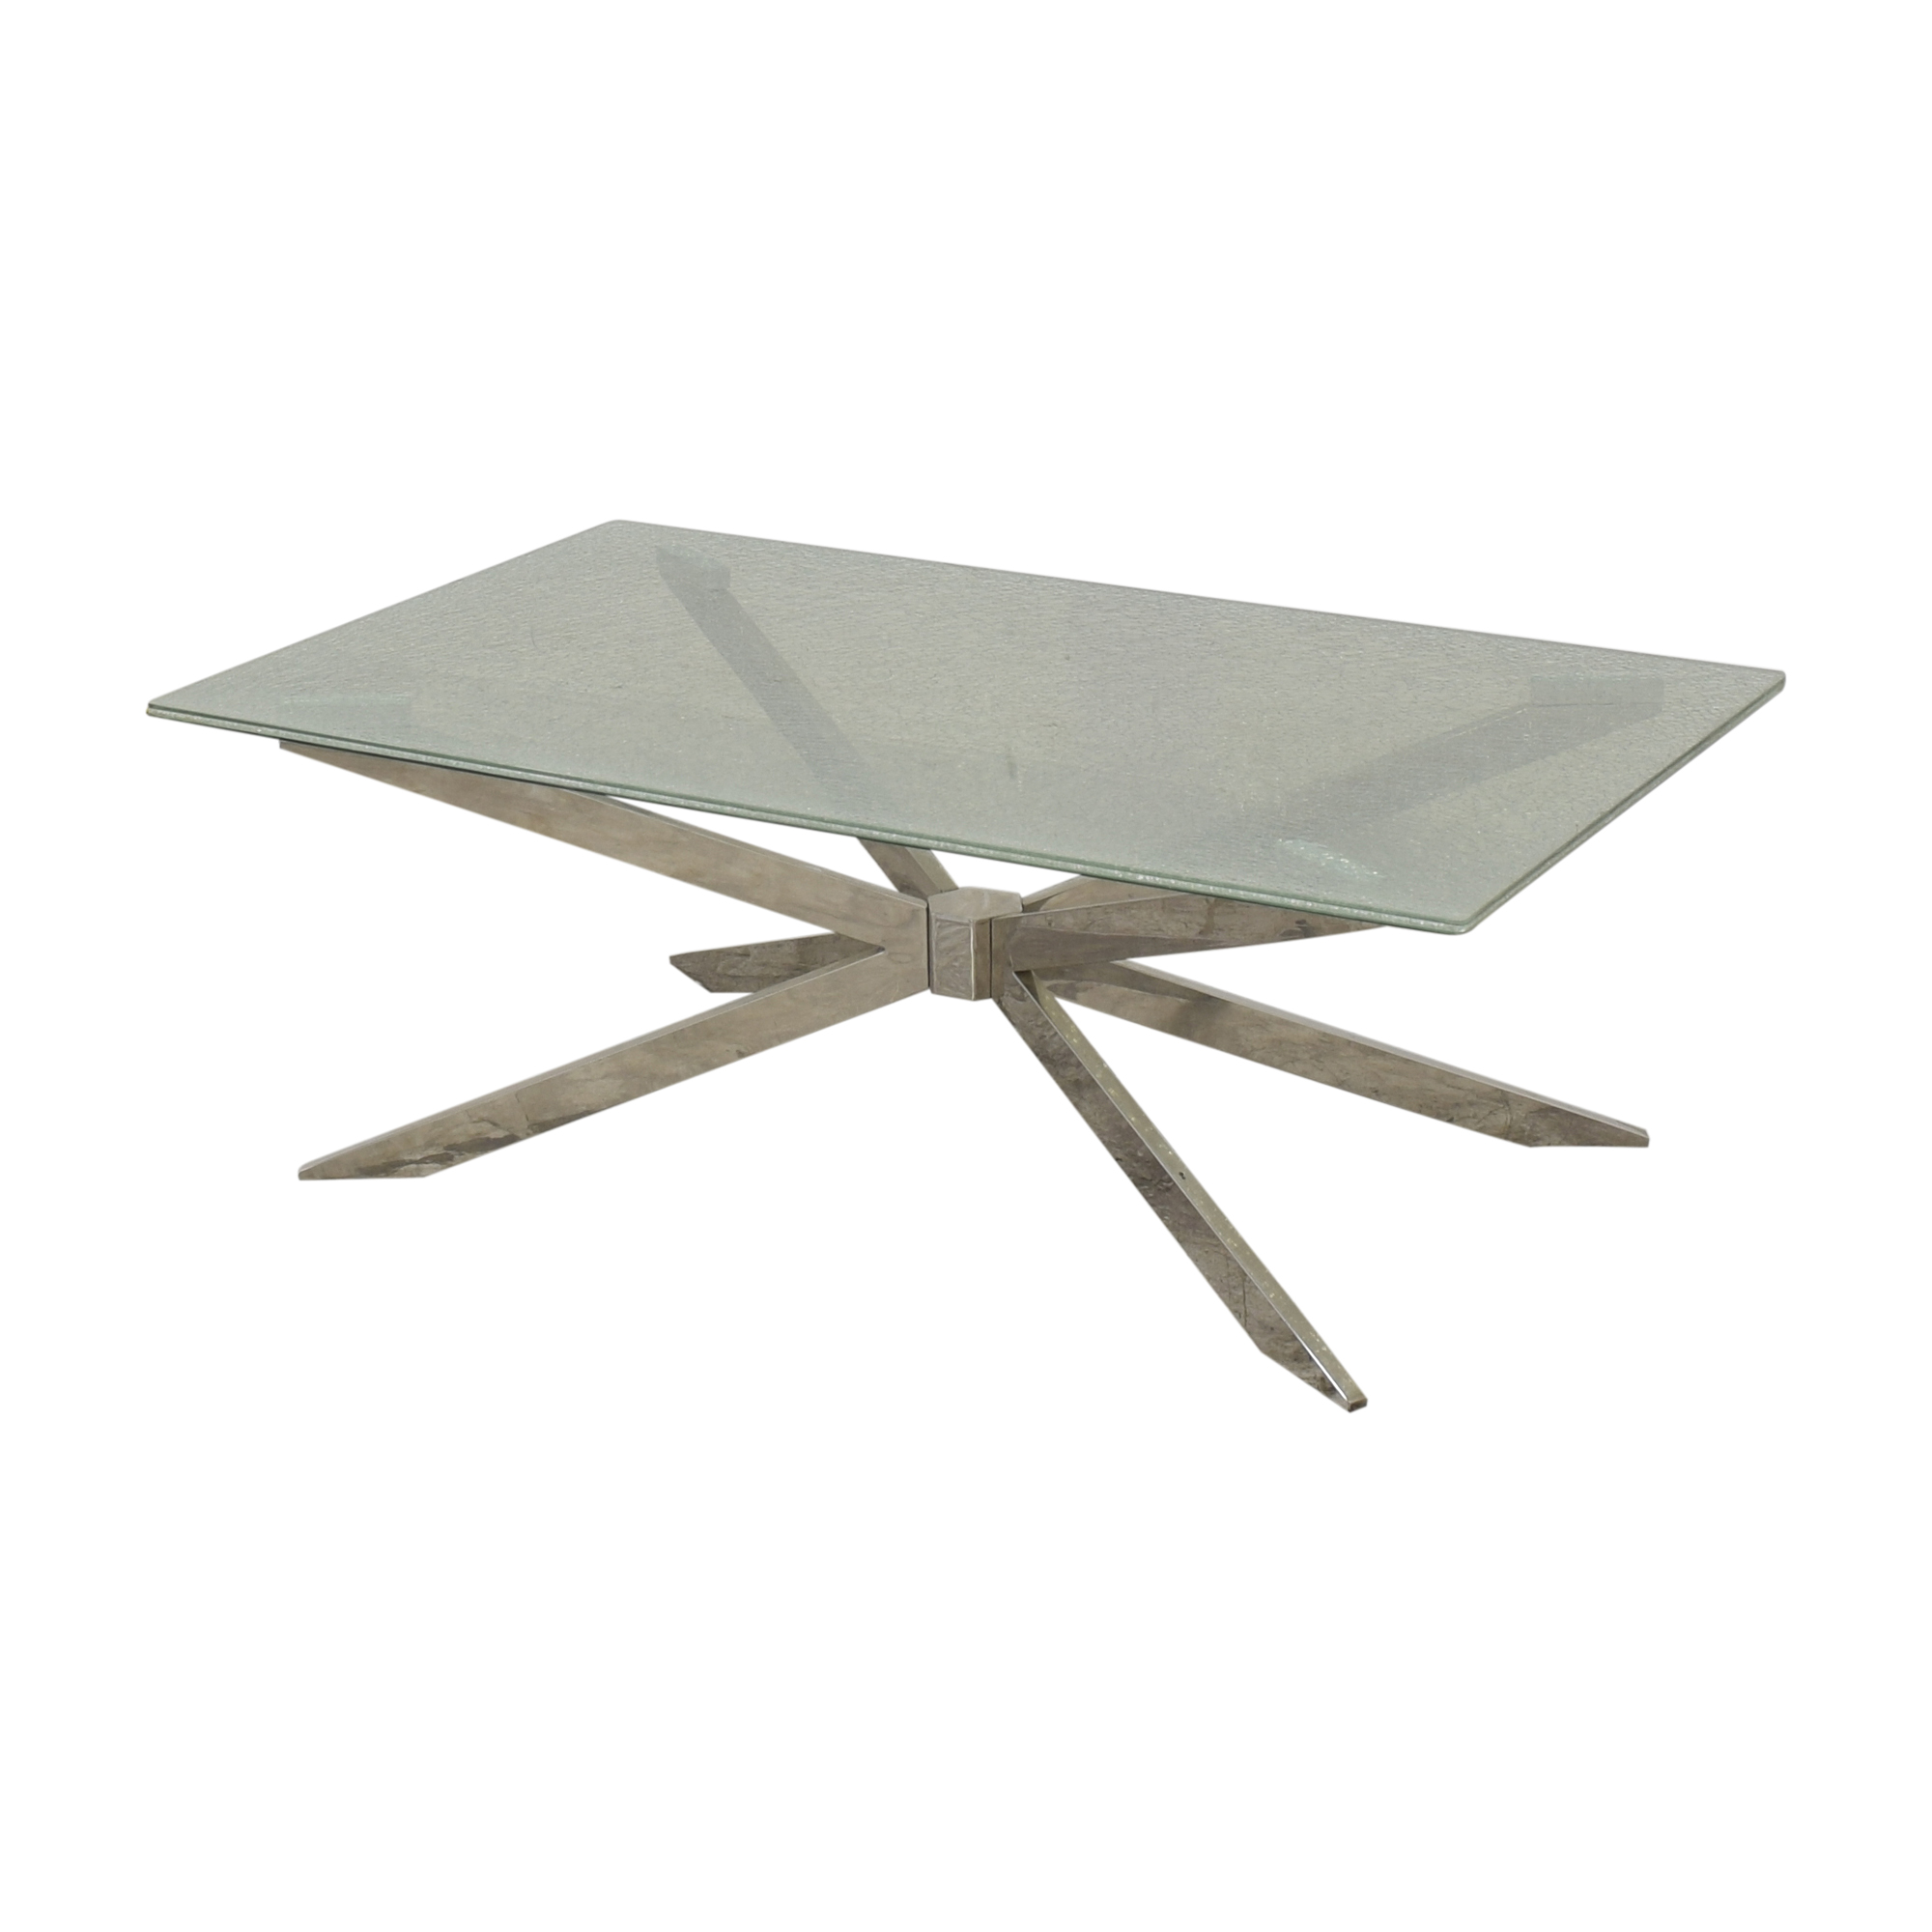 Raymour & Flanigan Raymour & Flanigan Contemporary Cocktail Table on sale